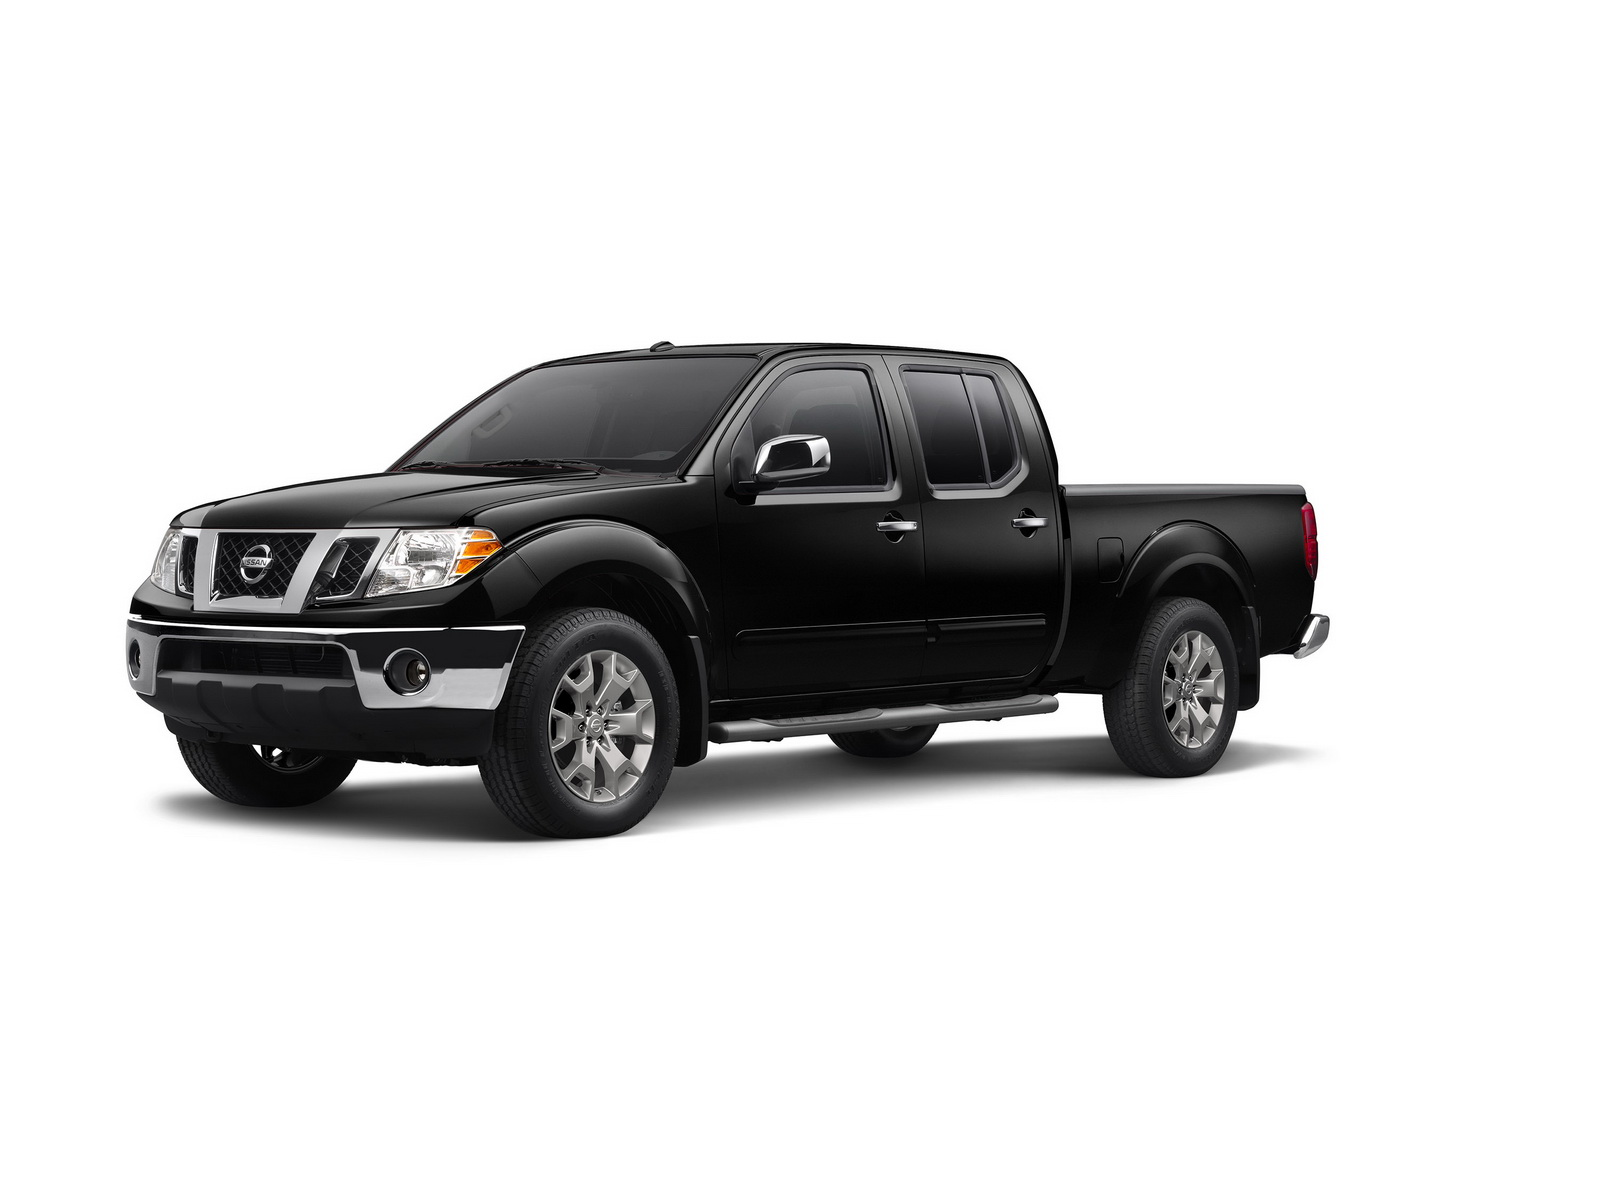 2017 nissan frontier goes on sale in the us priced from. Black Bedroom Furniture Sets. Home Design Ideas